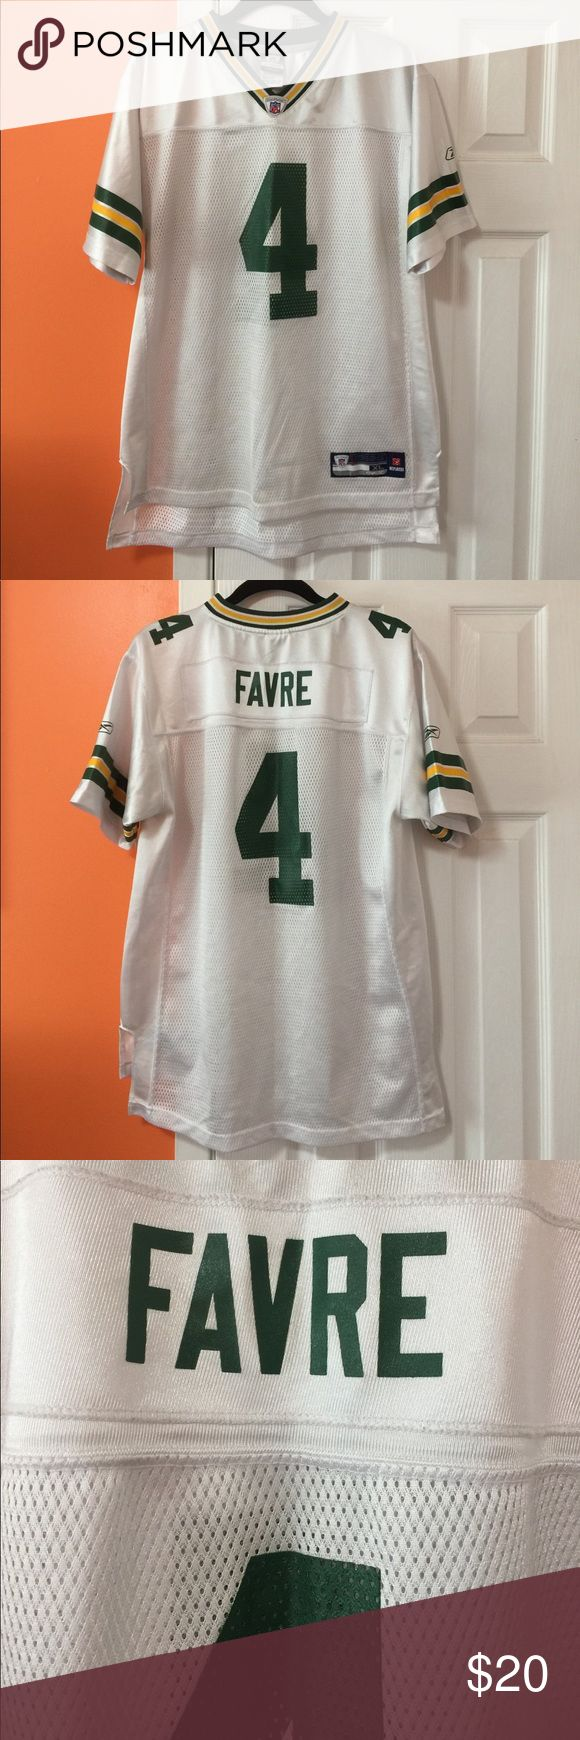 Brett Favre Jersey Favre Jersey. A collector for the true fan. Authentic  RBK... Picture shows a little discolored on front white..XL Boys 18-20. Would fit A Girls small 👕🏈🏈 NFL Shirts & Tops